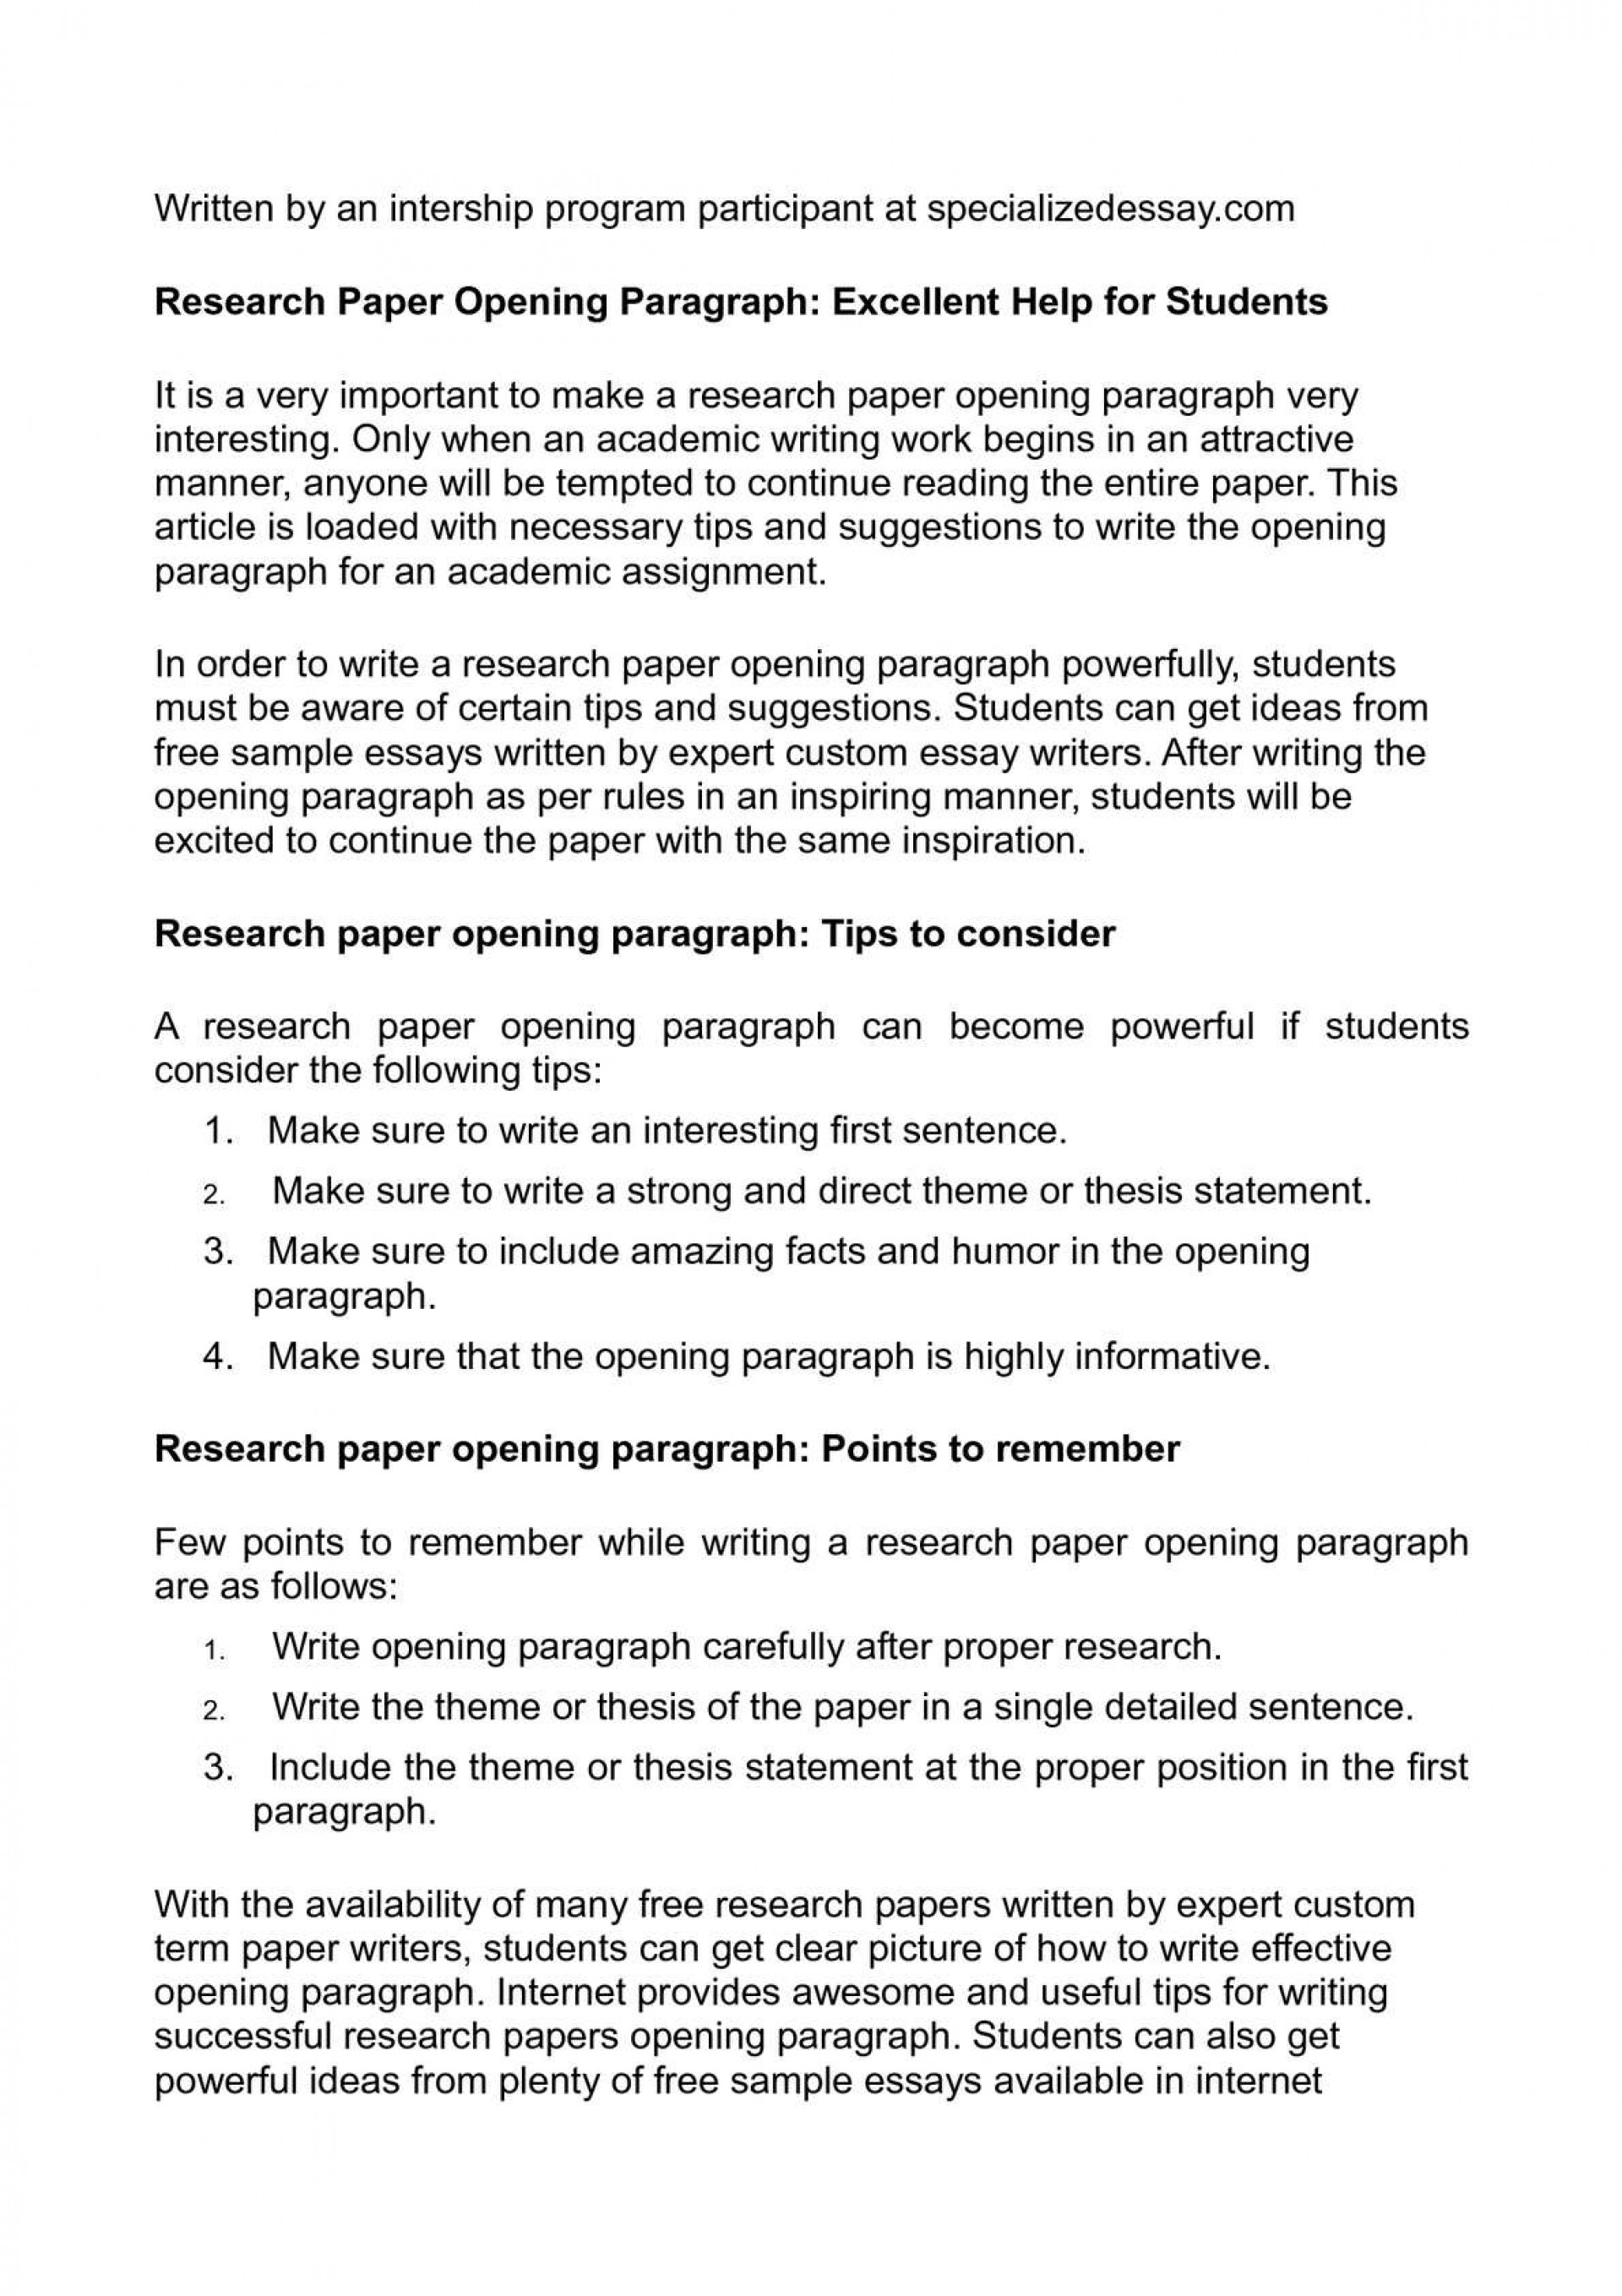 005 Research Paper P1 Tips For Wondrous Papers Good Effective Writing 1920